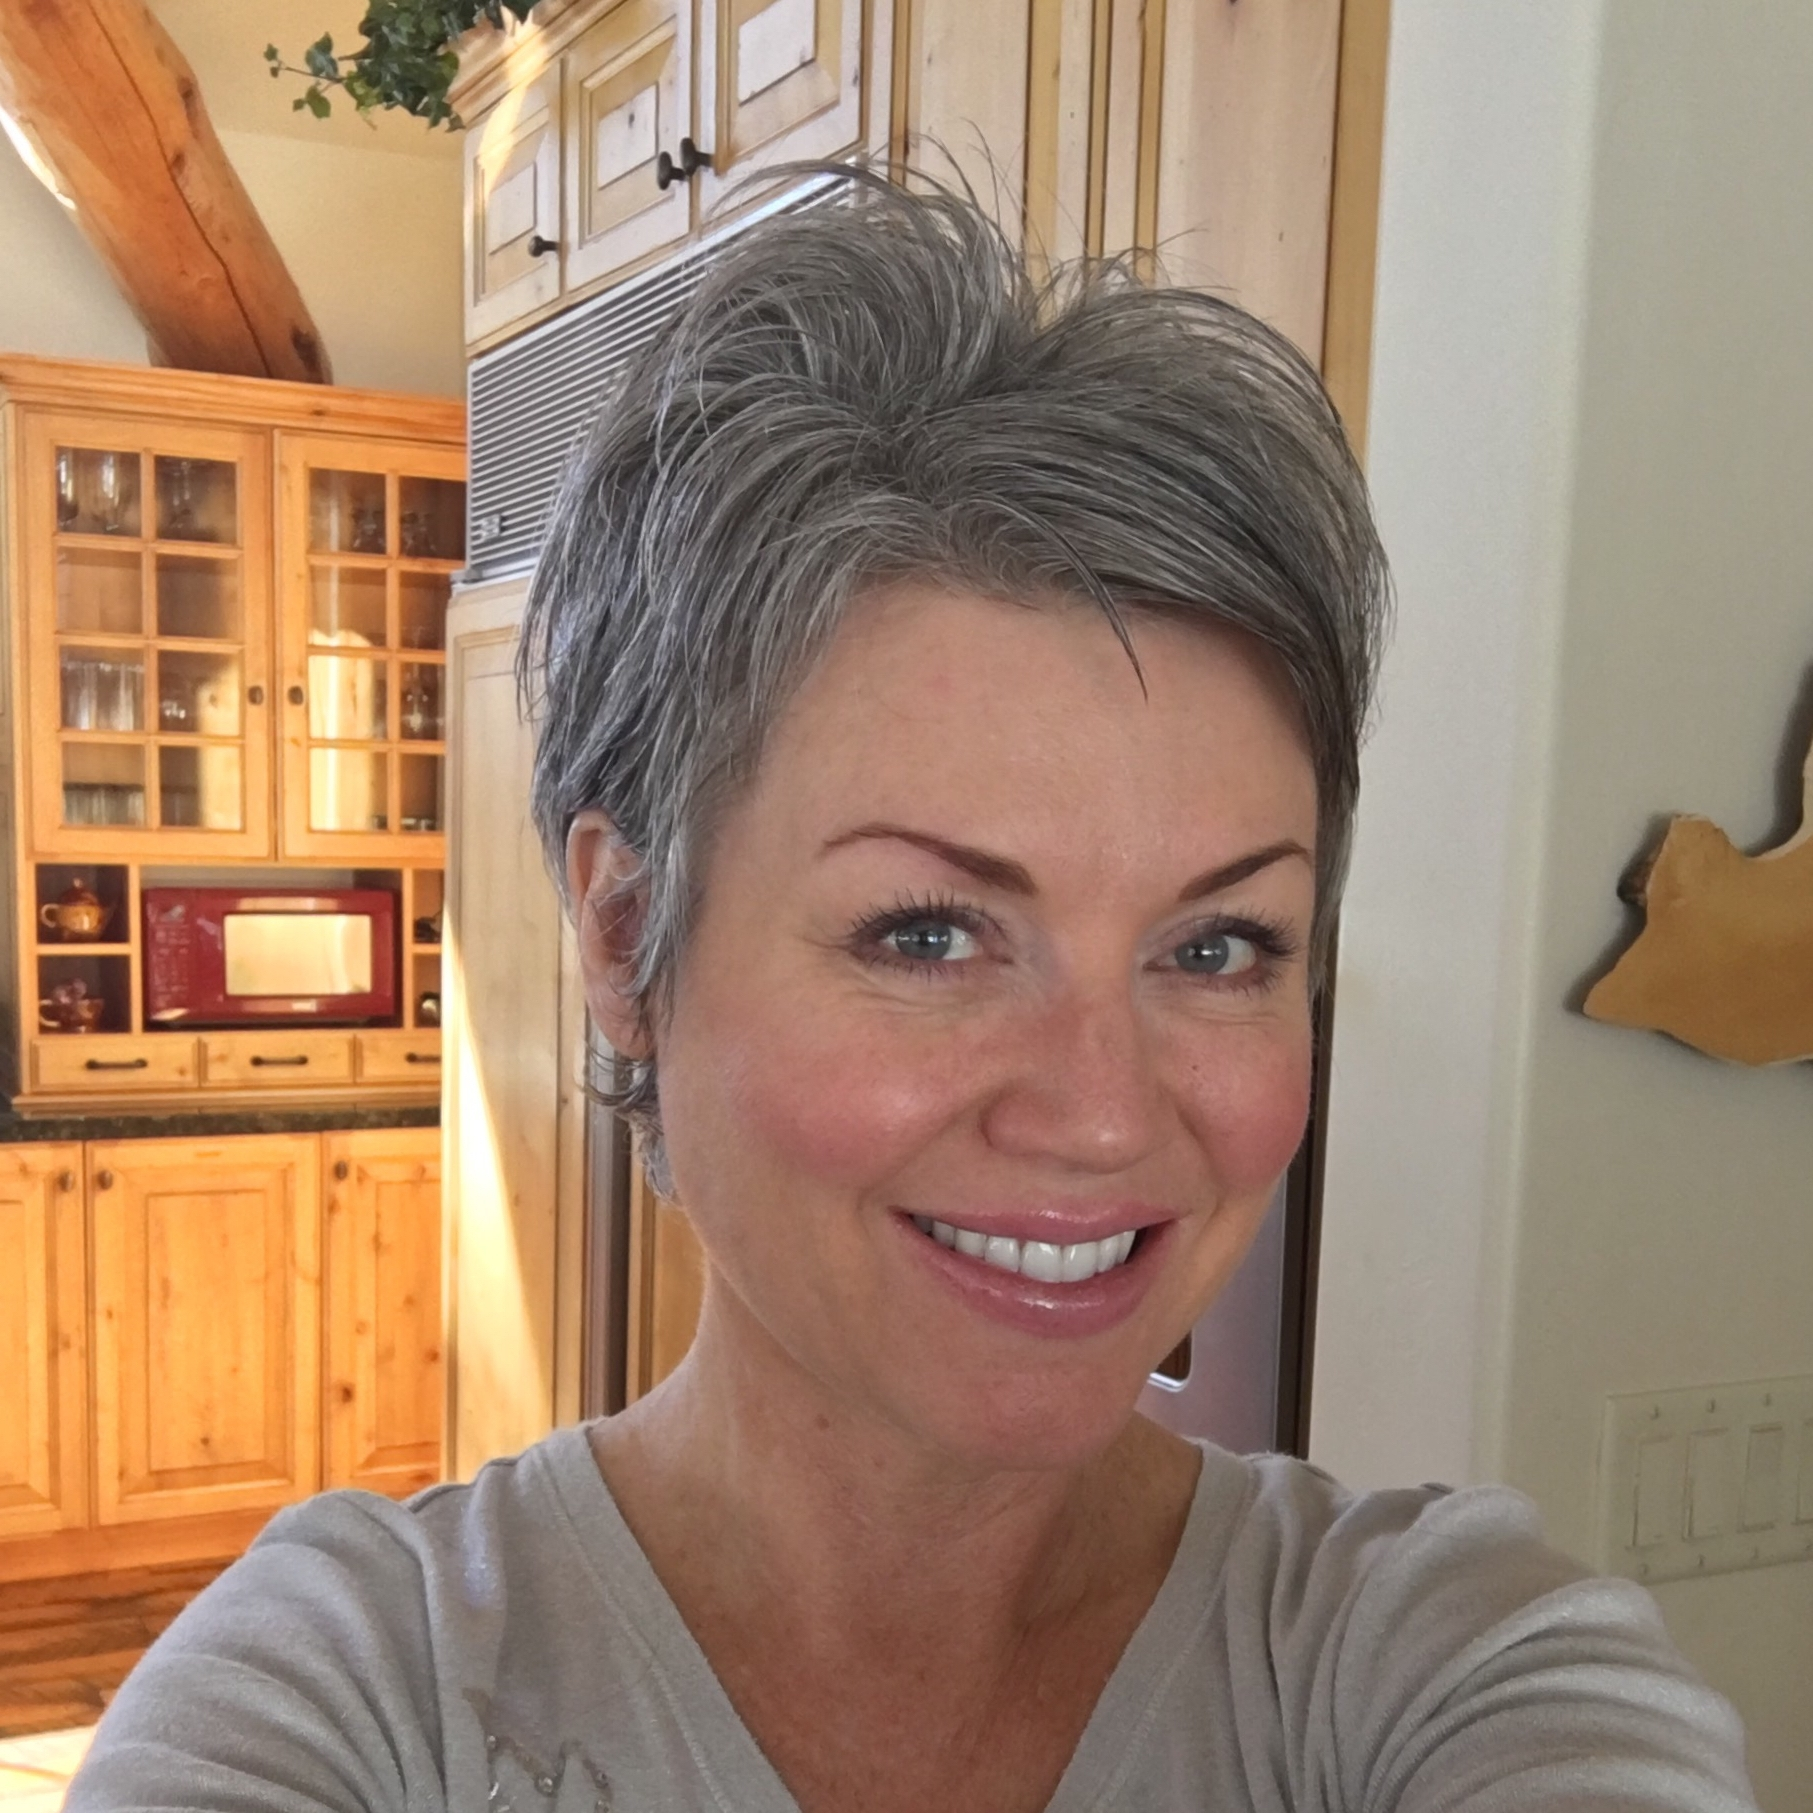 15 Ideas of Short Pixie Hairstyles For Gray Hair